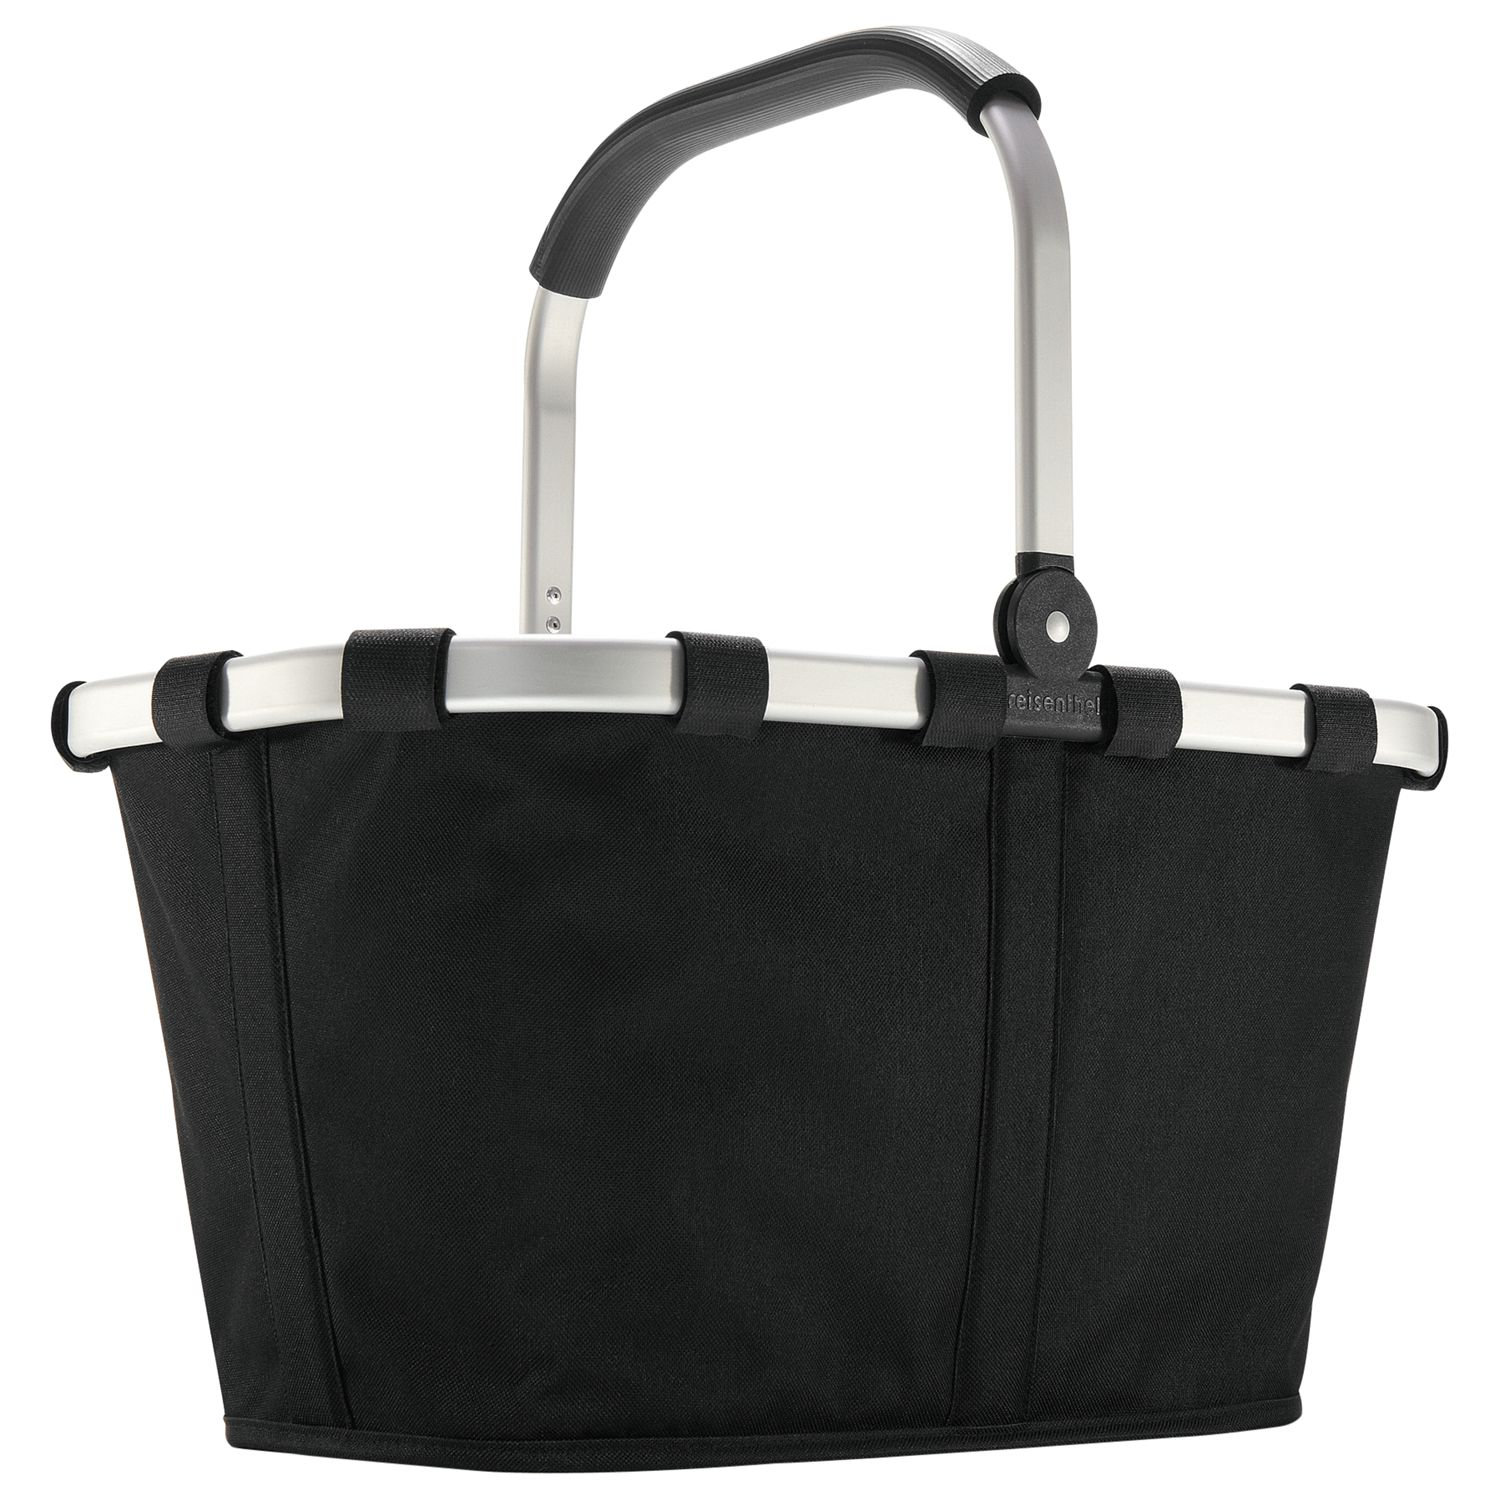 Reisenthel Carry Bag, Black